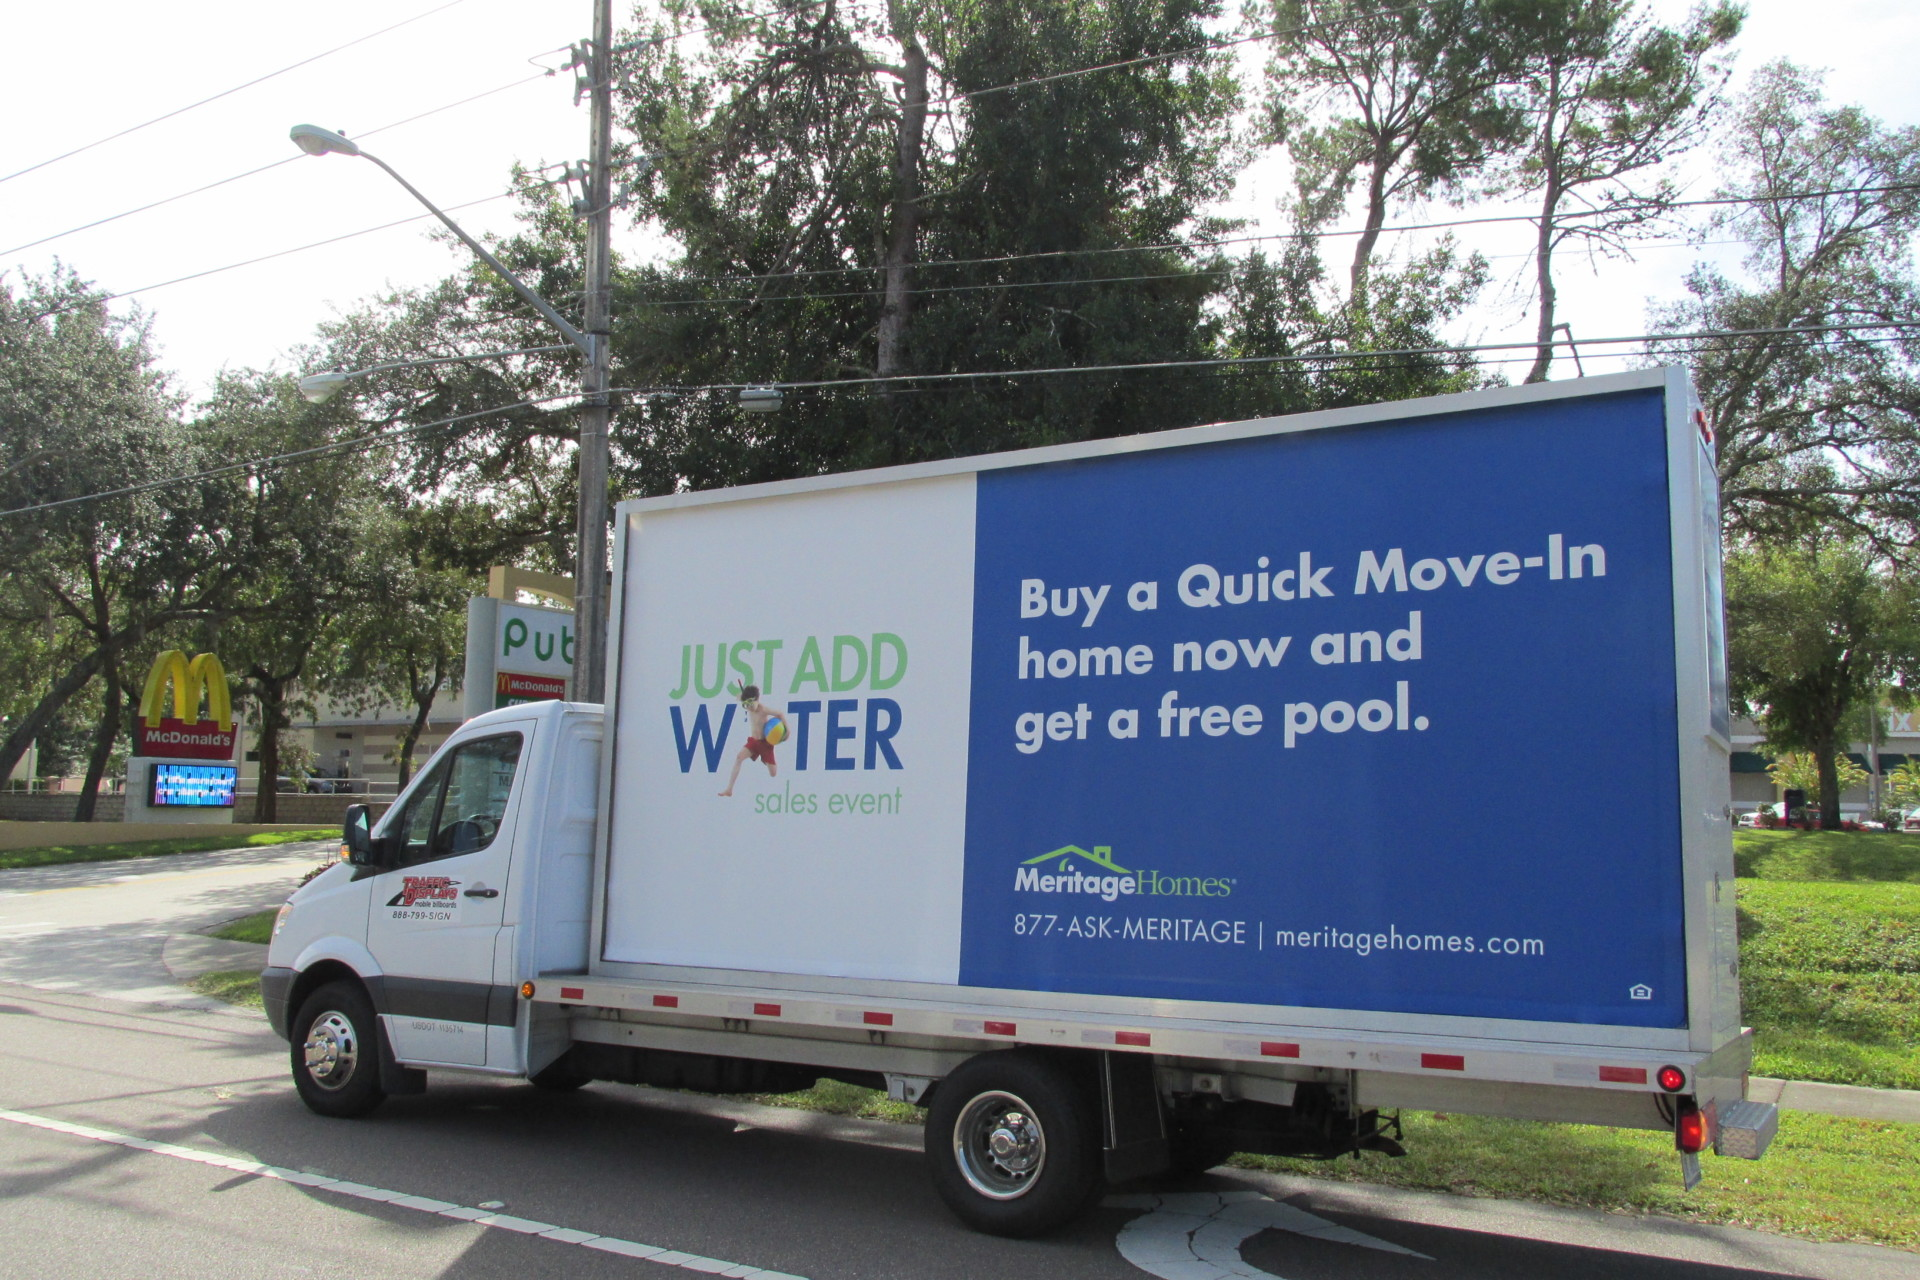 Mobile Billboard truck in Jacksonville, FL